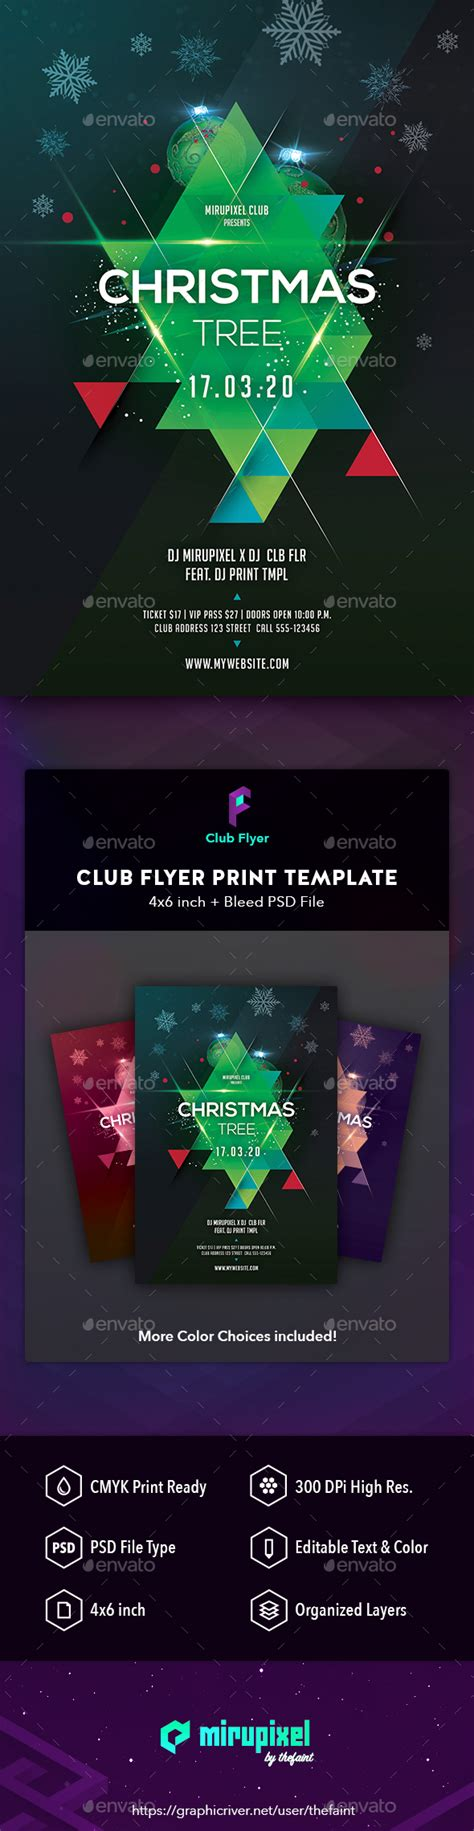 Blank Christmas Club Flyer Design 187 Tinkytyler Org Stock Tree Lighting Flyer Template